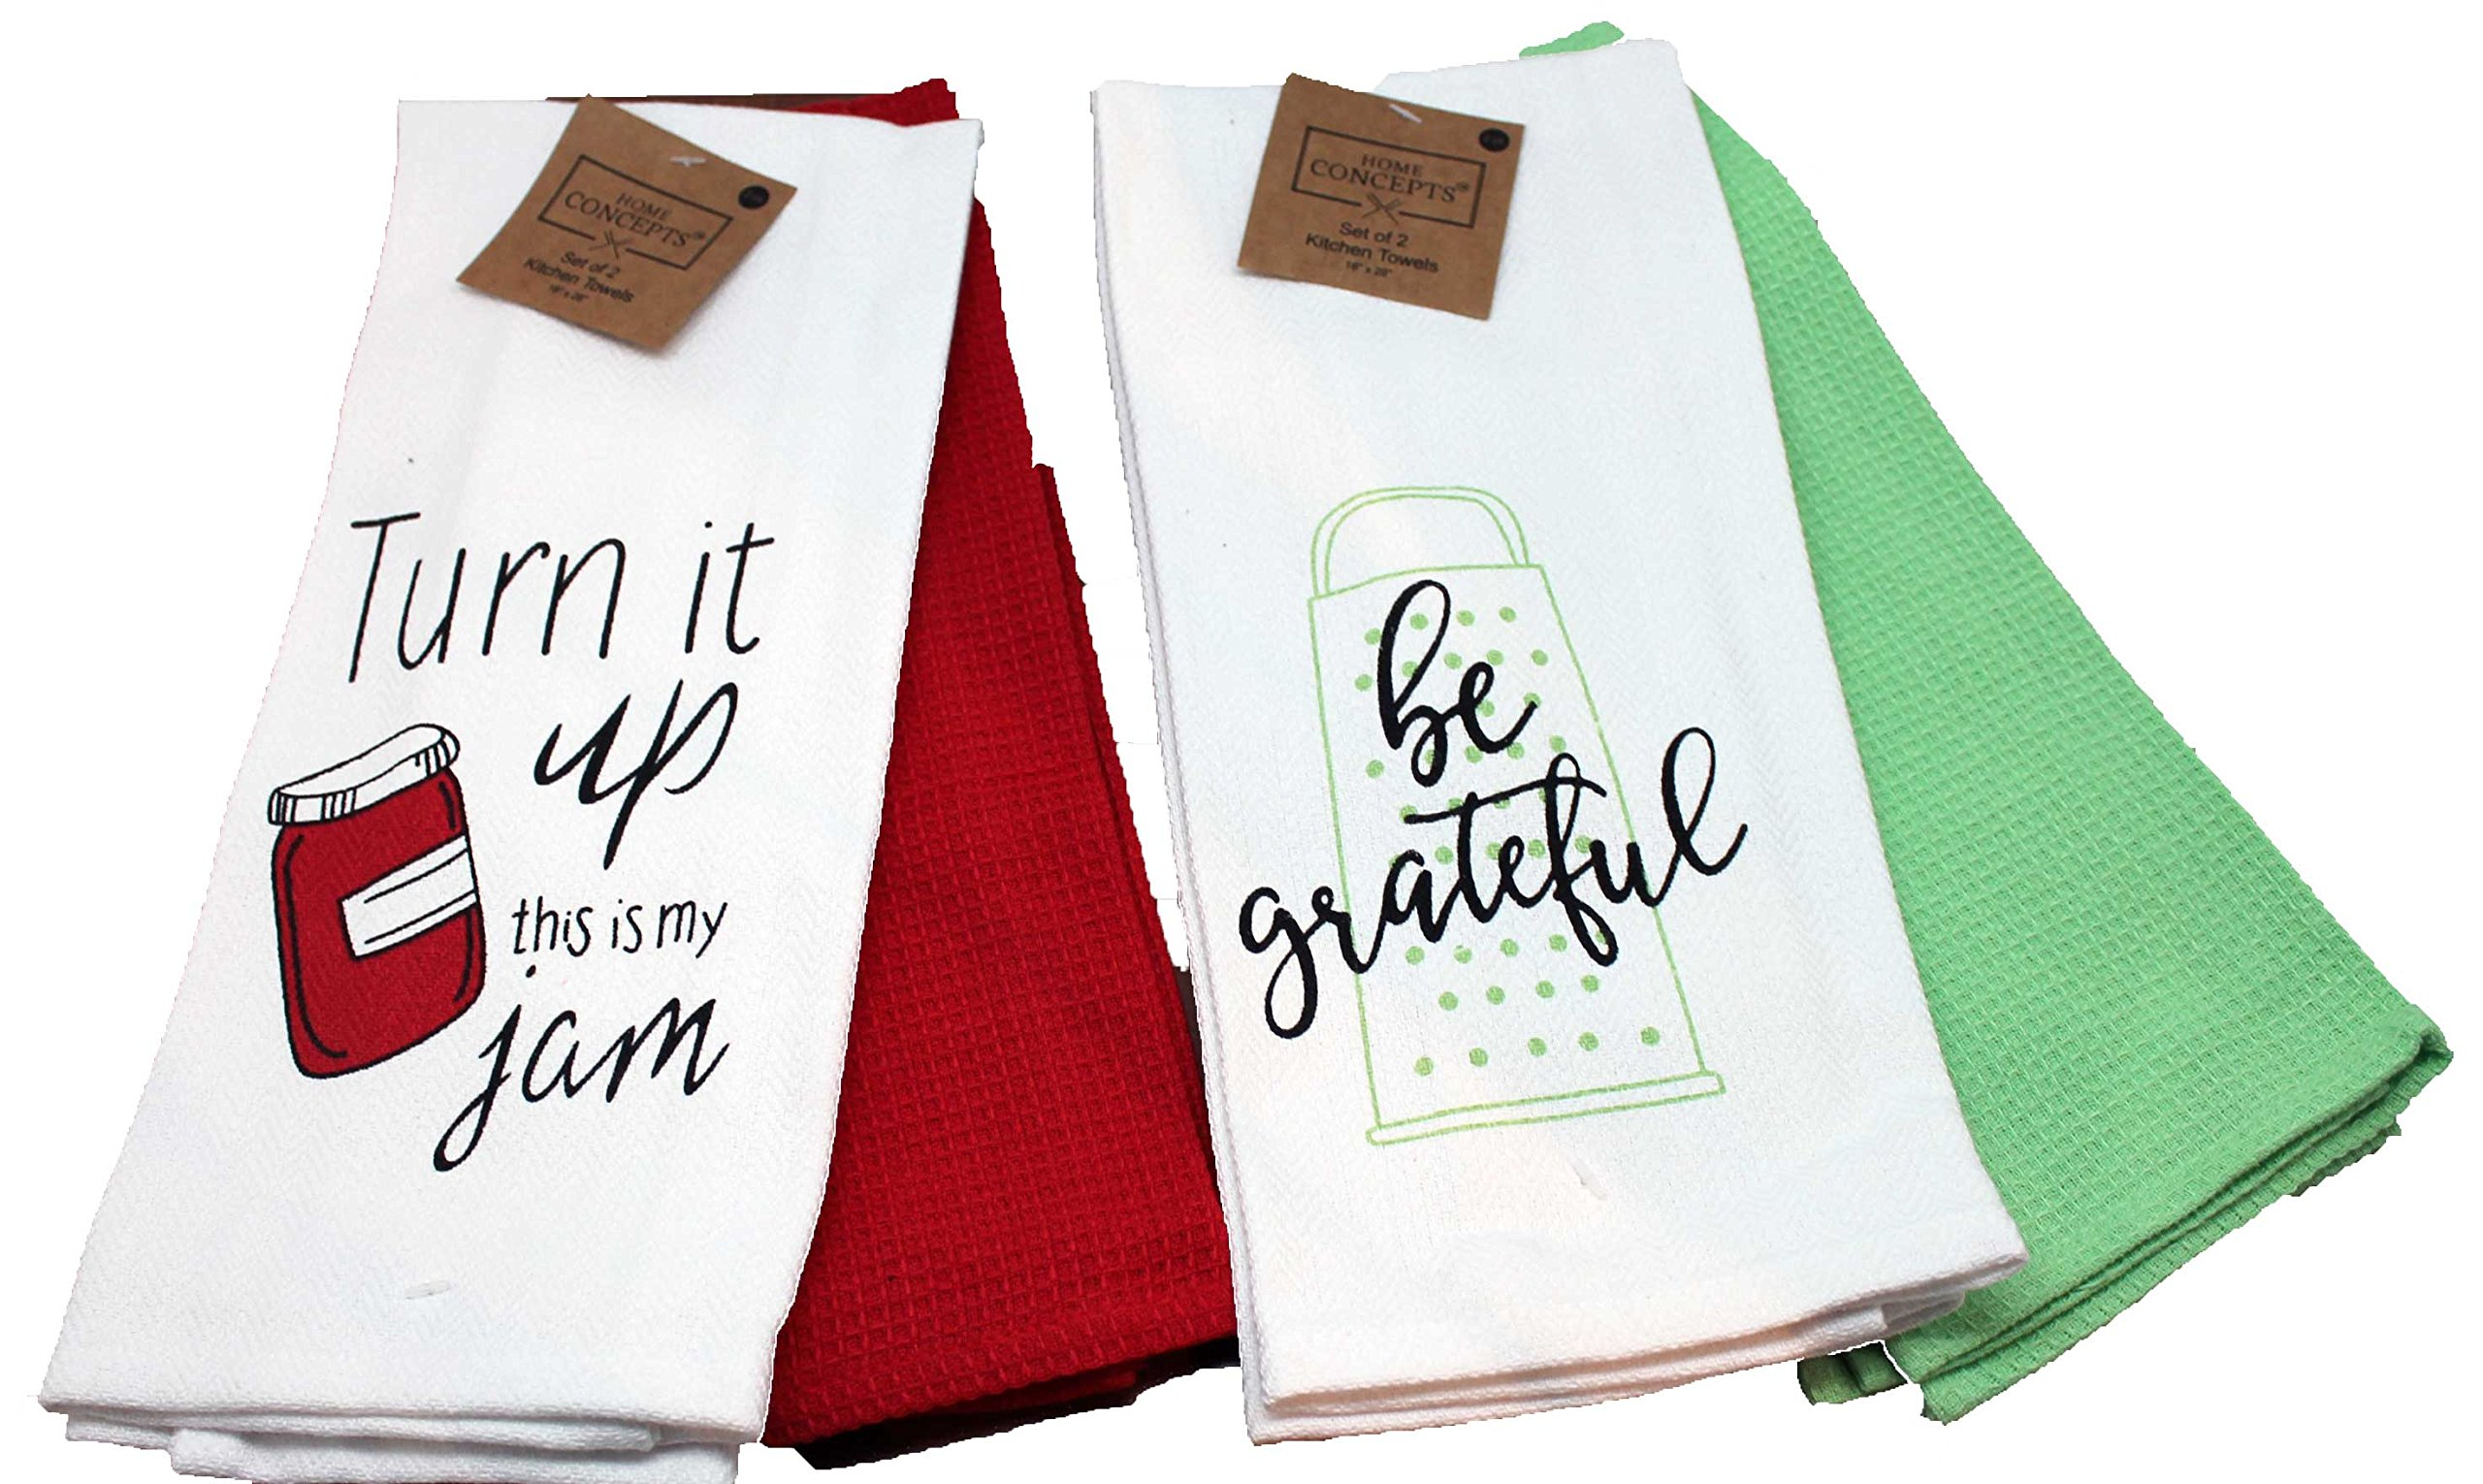 Twisted Anchor Trading Co Set of 4 Funny Kitchen Towels - Baking and Cooking Related Kitchen Towels Gift Set - Comes in Organza Gift Bag